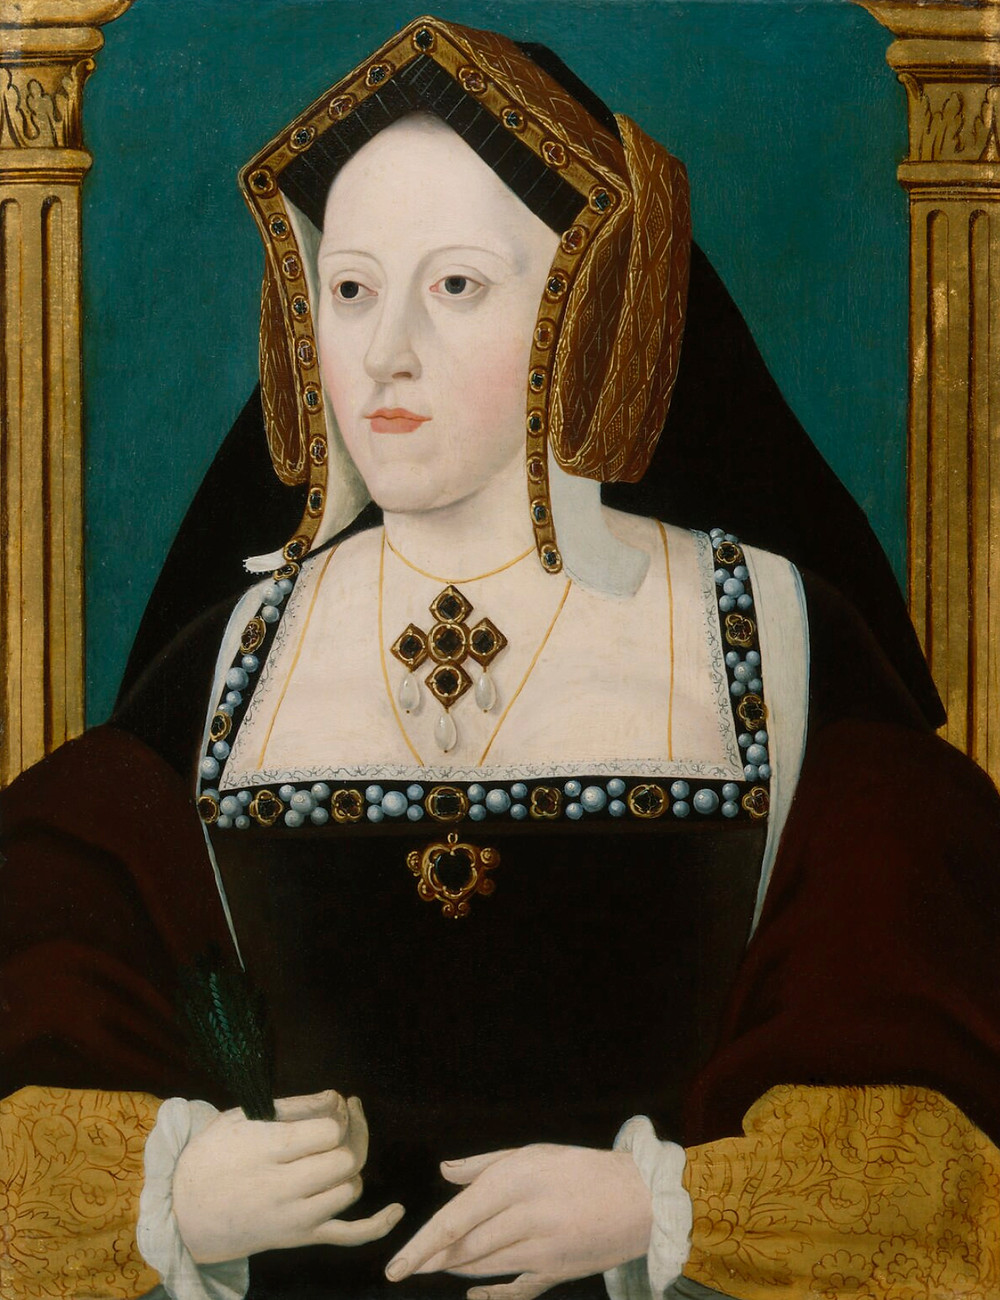 Katharine of Aragon portrait painting, 18th-century copy of a lost original portrait